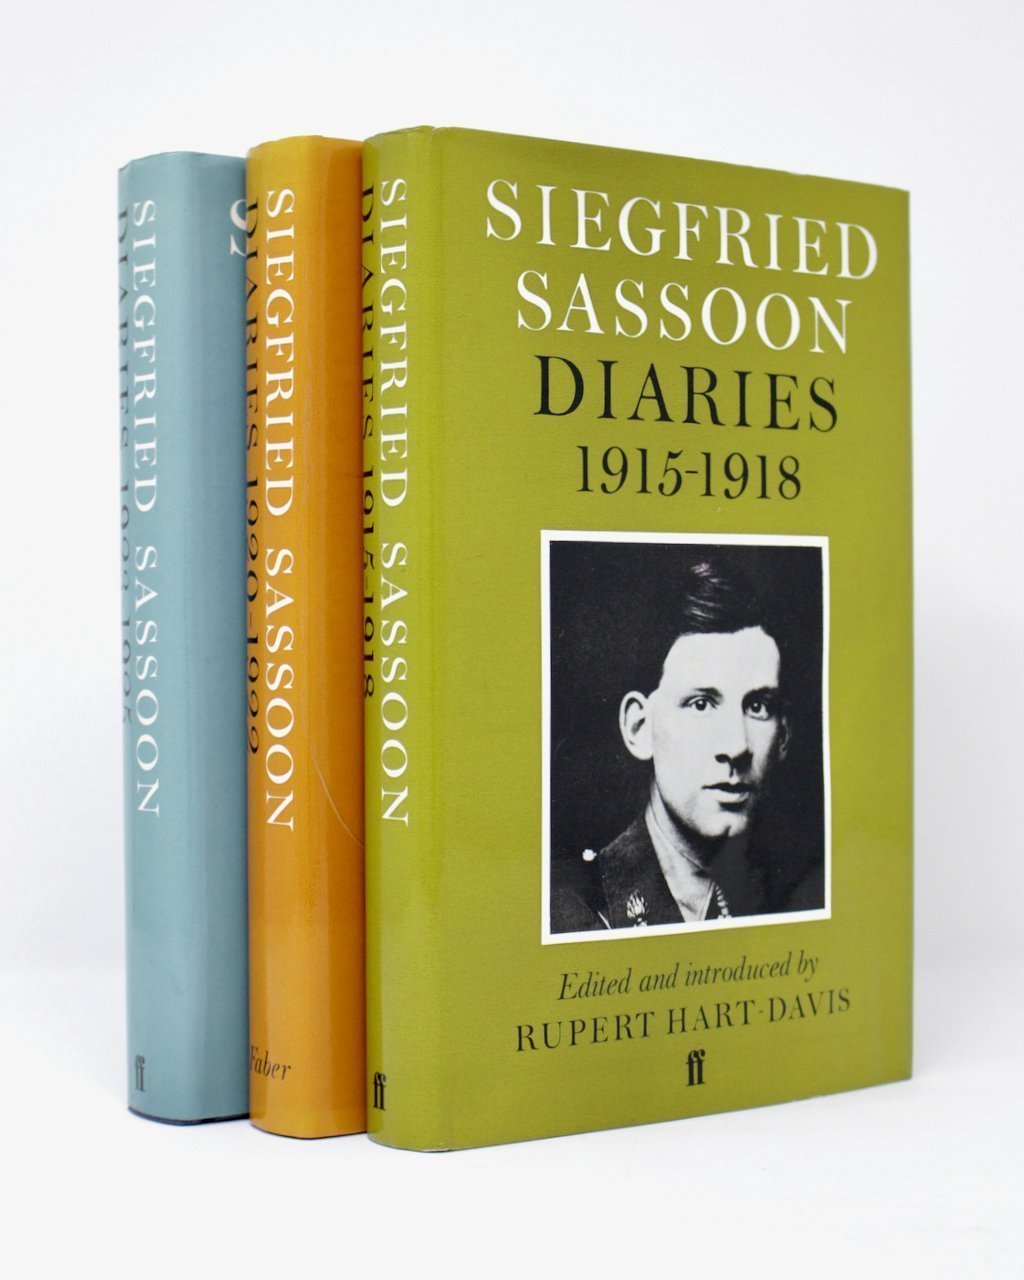 1915-1925 (IN 3 VOLS.) BY SIEGFRIED SASSOON